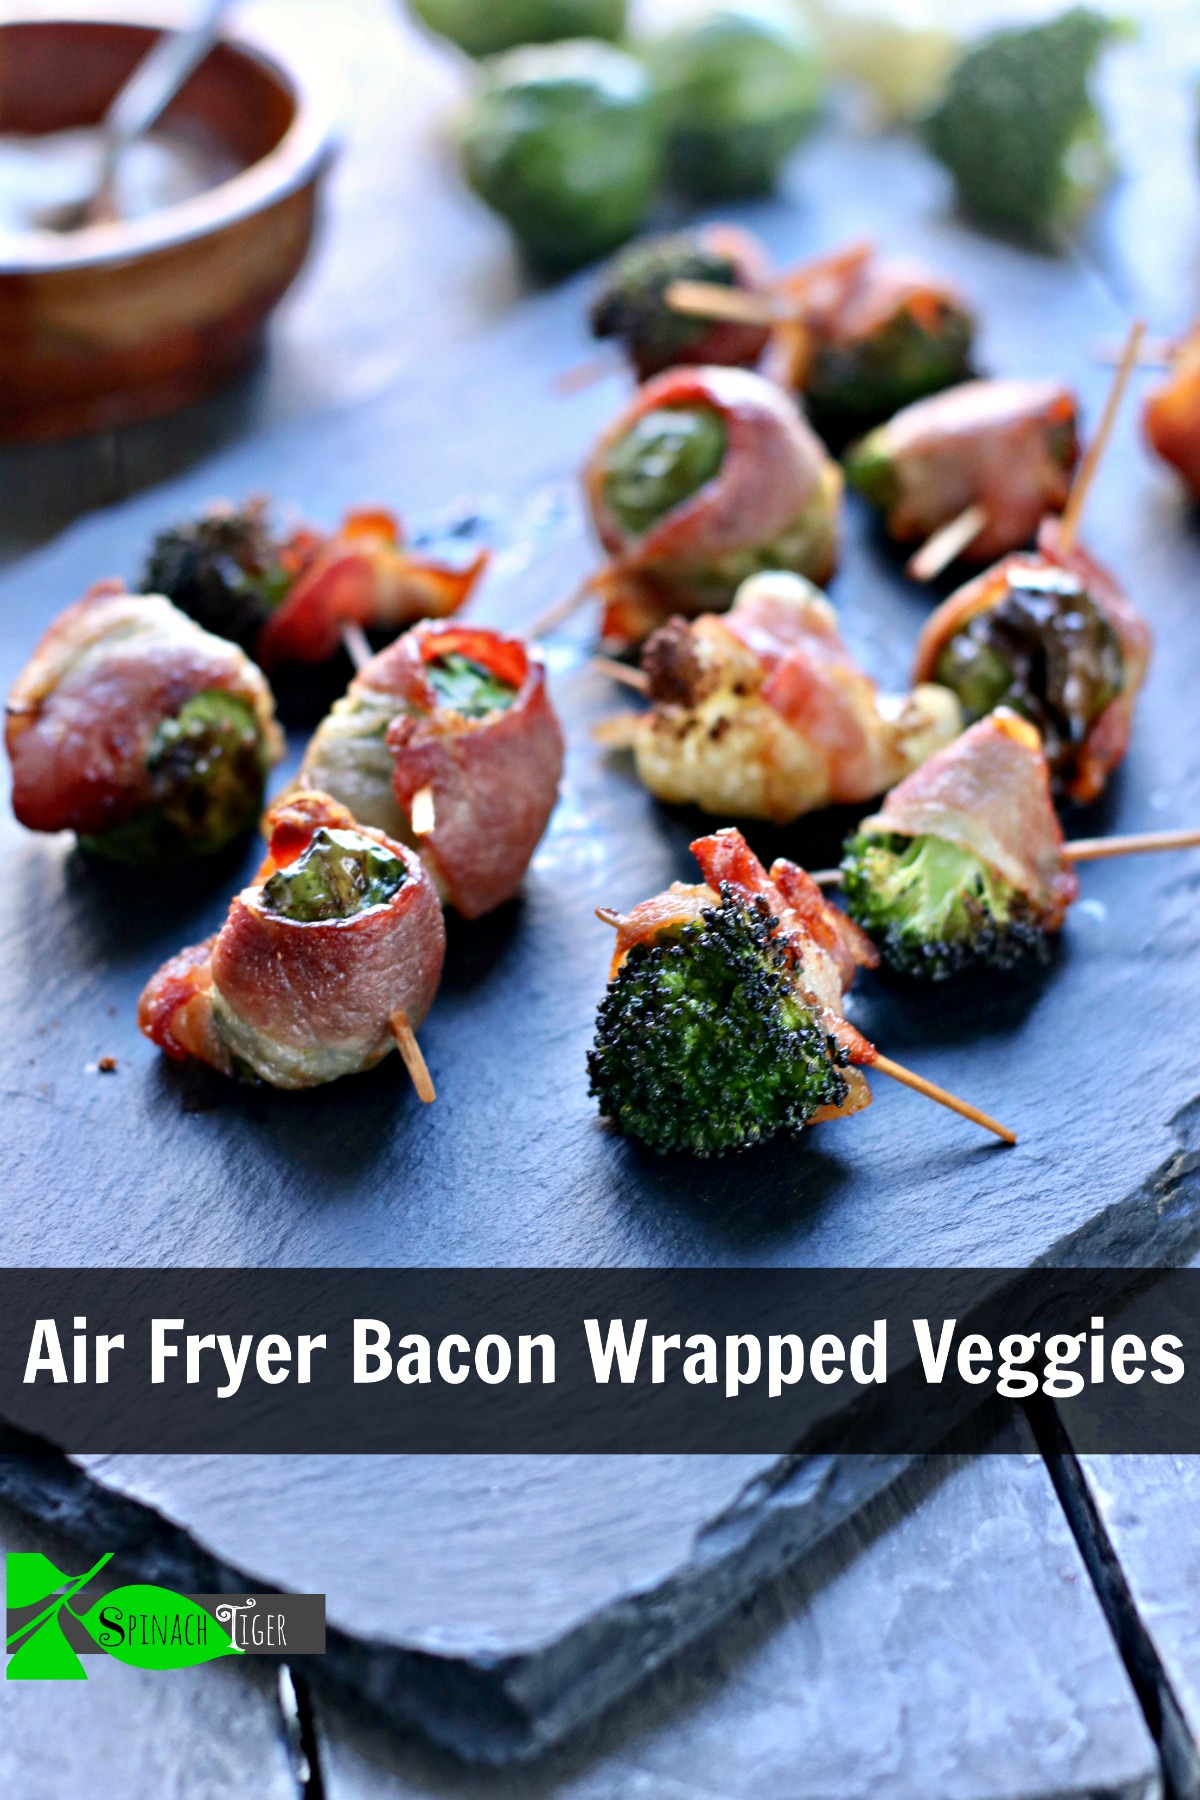 Made in Air Fryer, bacon wrapped veggies, #brusselssprouts #broccoli #cauliflower. Easy #ketorecipe #gamedayketorecipe #baconrecipe #airfryerrecipe.  via @angelaroberts